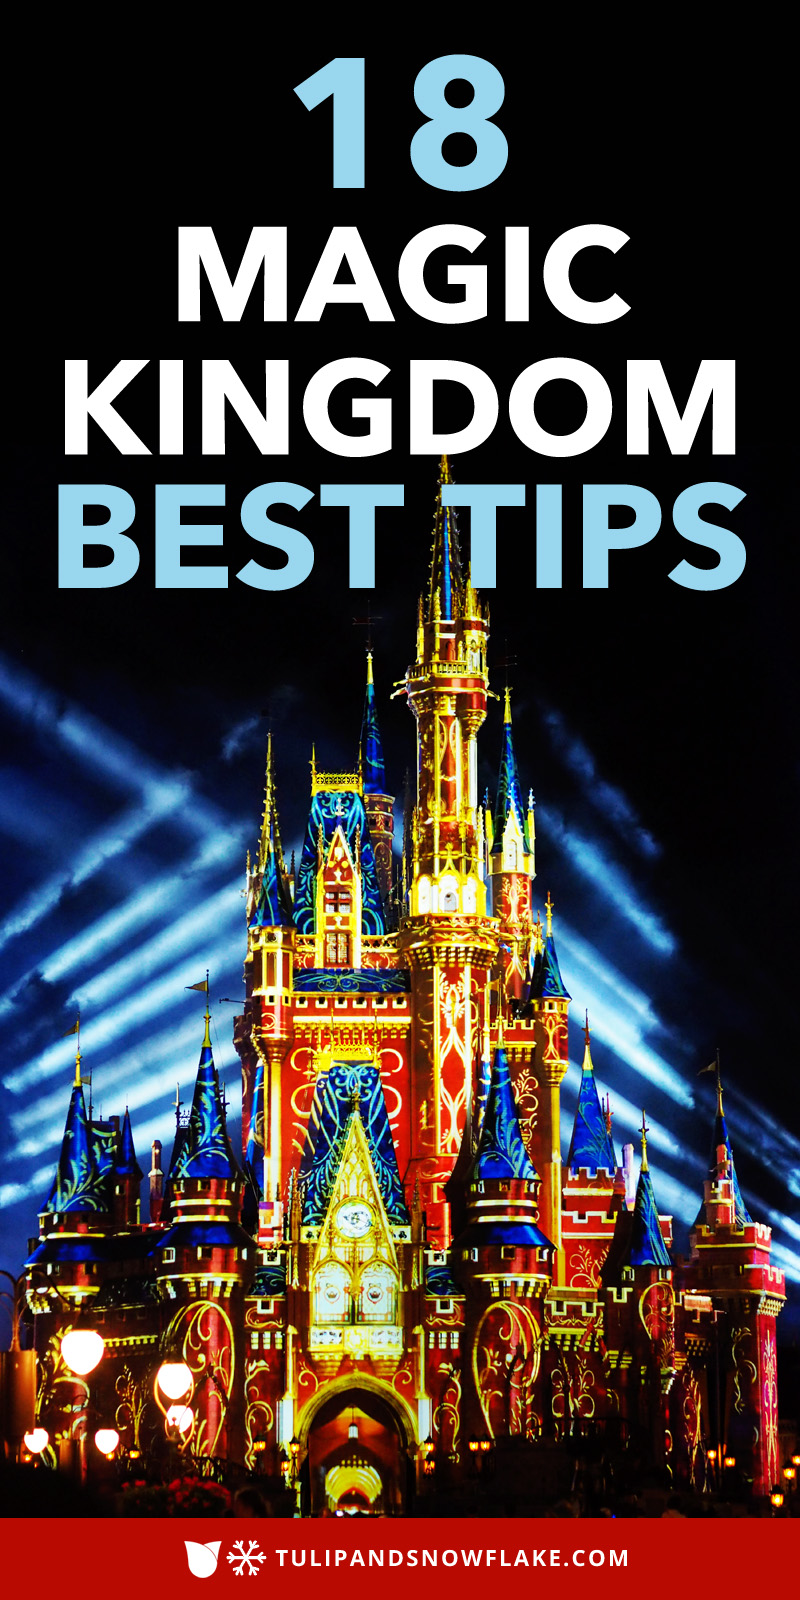 18 Magic Kingdom Best Tips